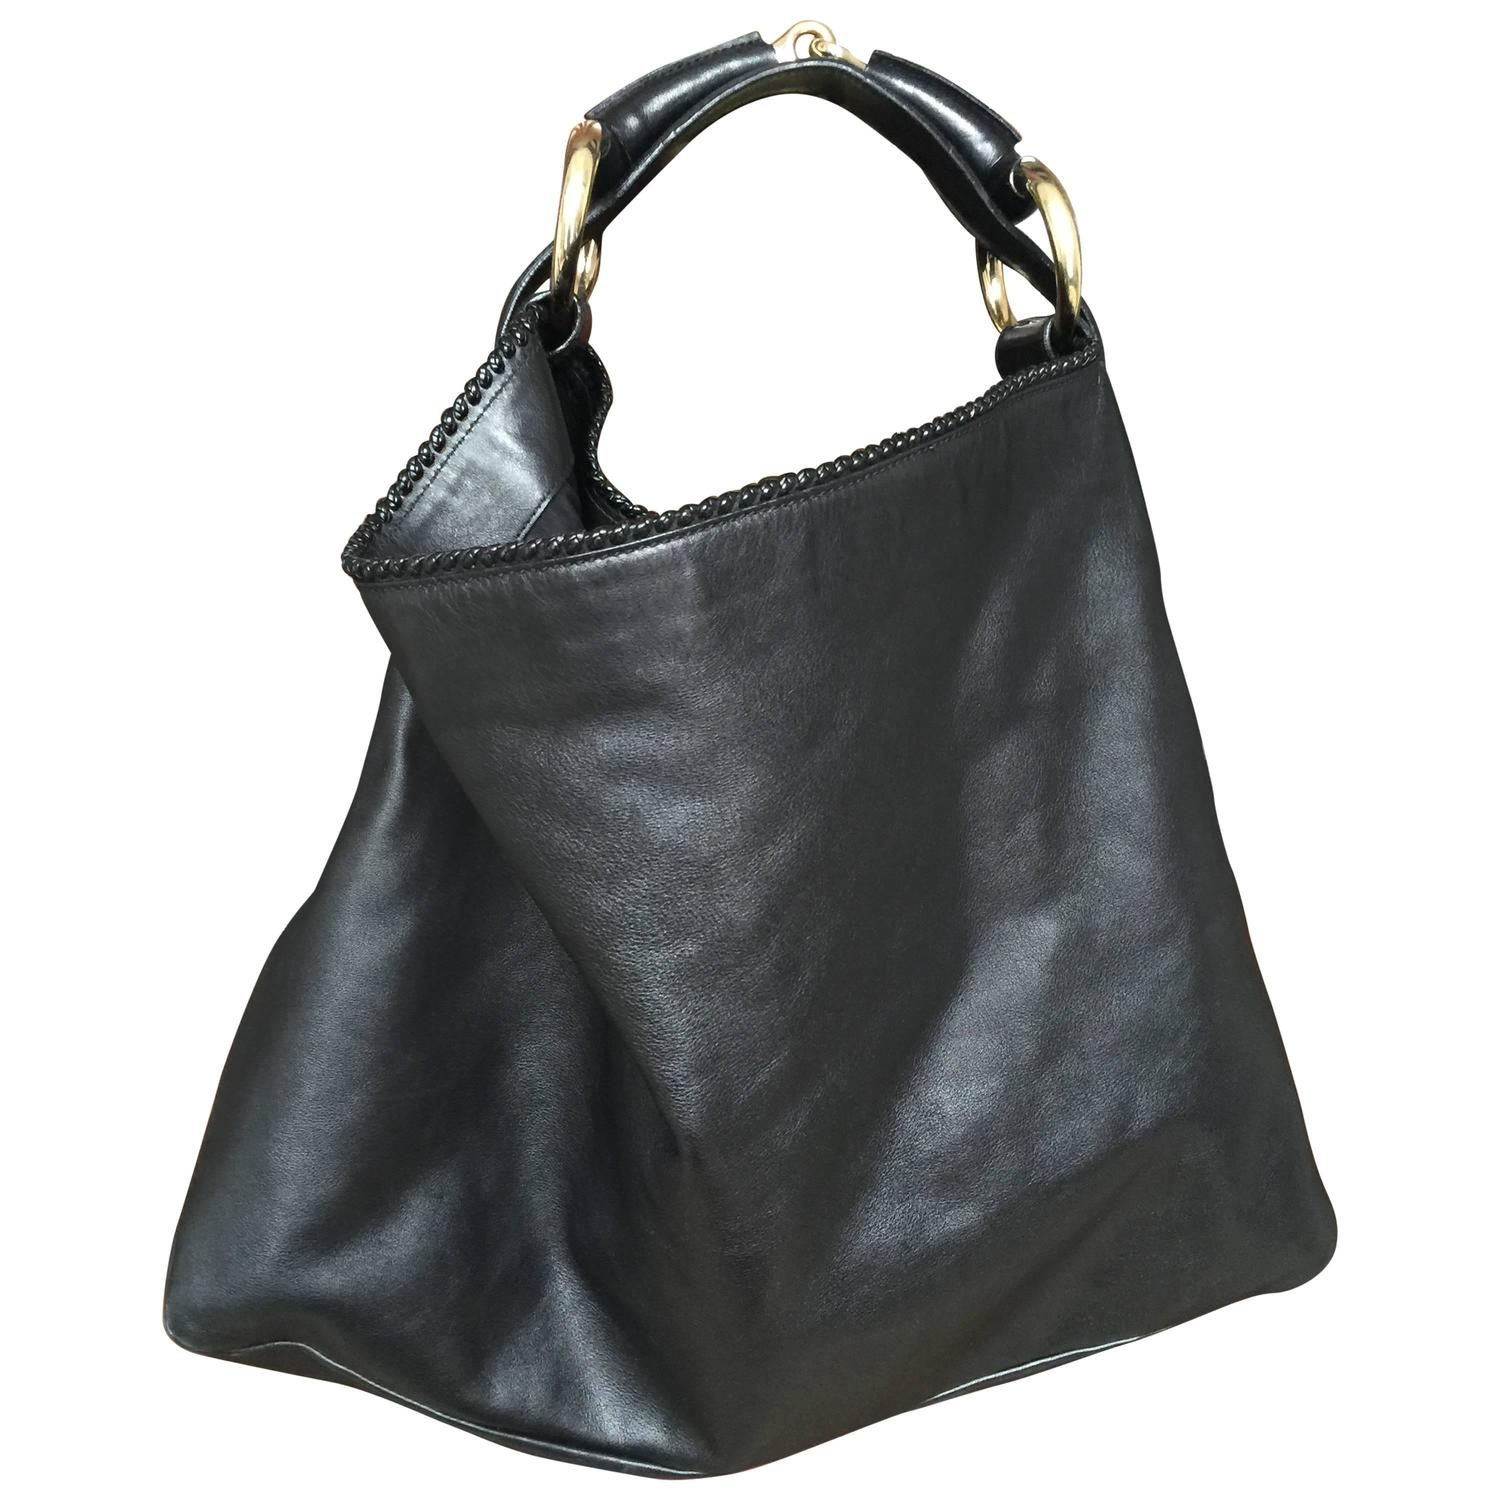 We have large hobo bags that feature roomy compartments to comfortably and securely store all your essentials with ease. Shop Neiman Marcus for a great selection of hobo bags .